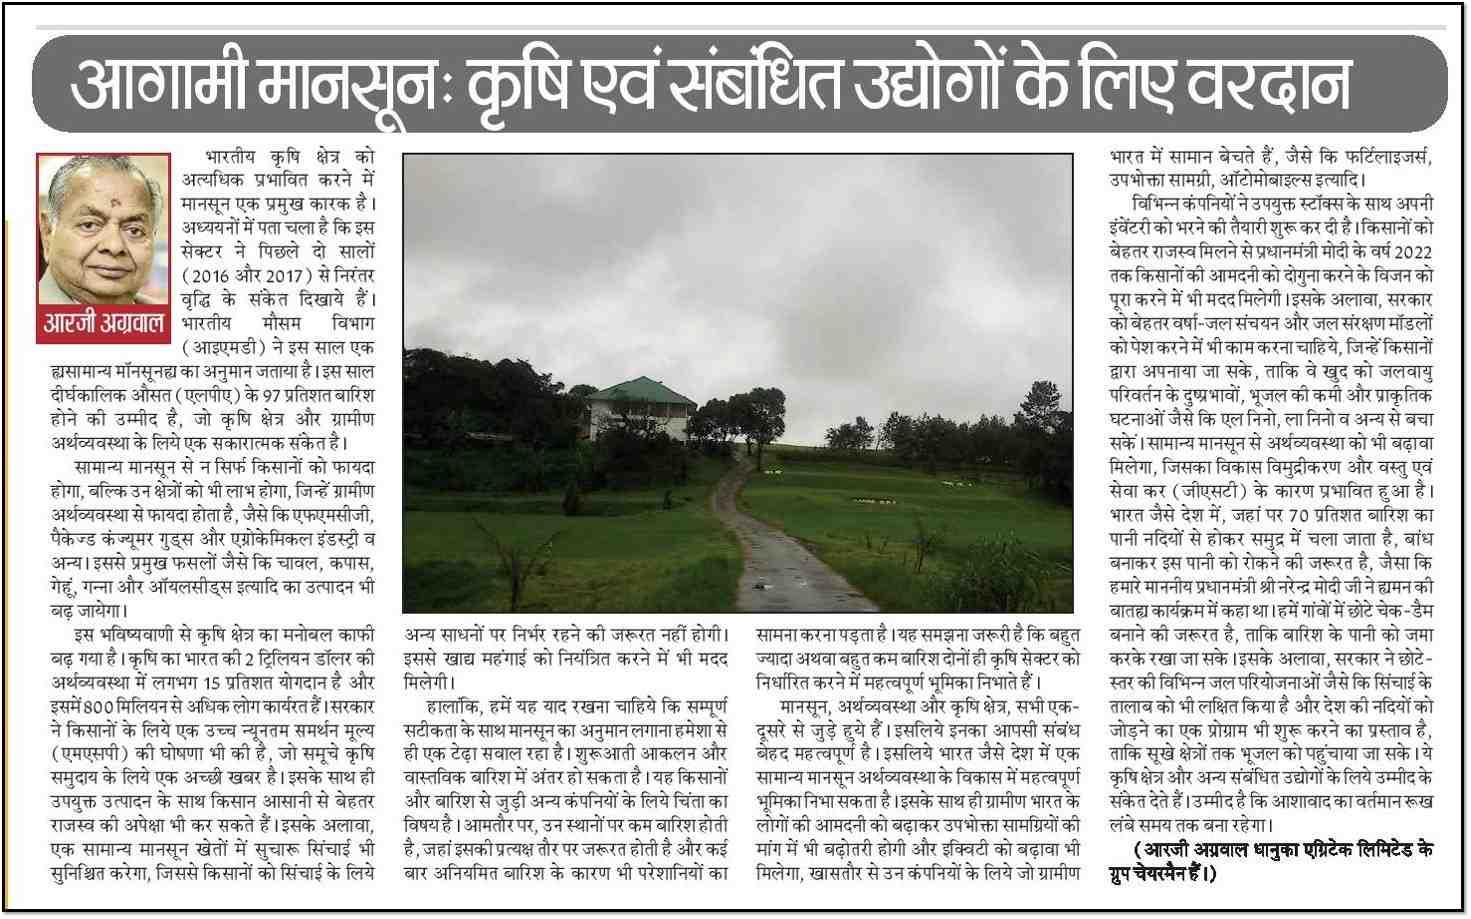 2018 Jagat Kranti - Monsoon effects on agriculture